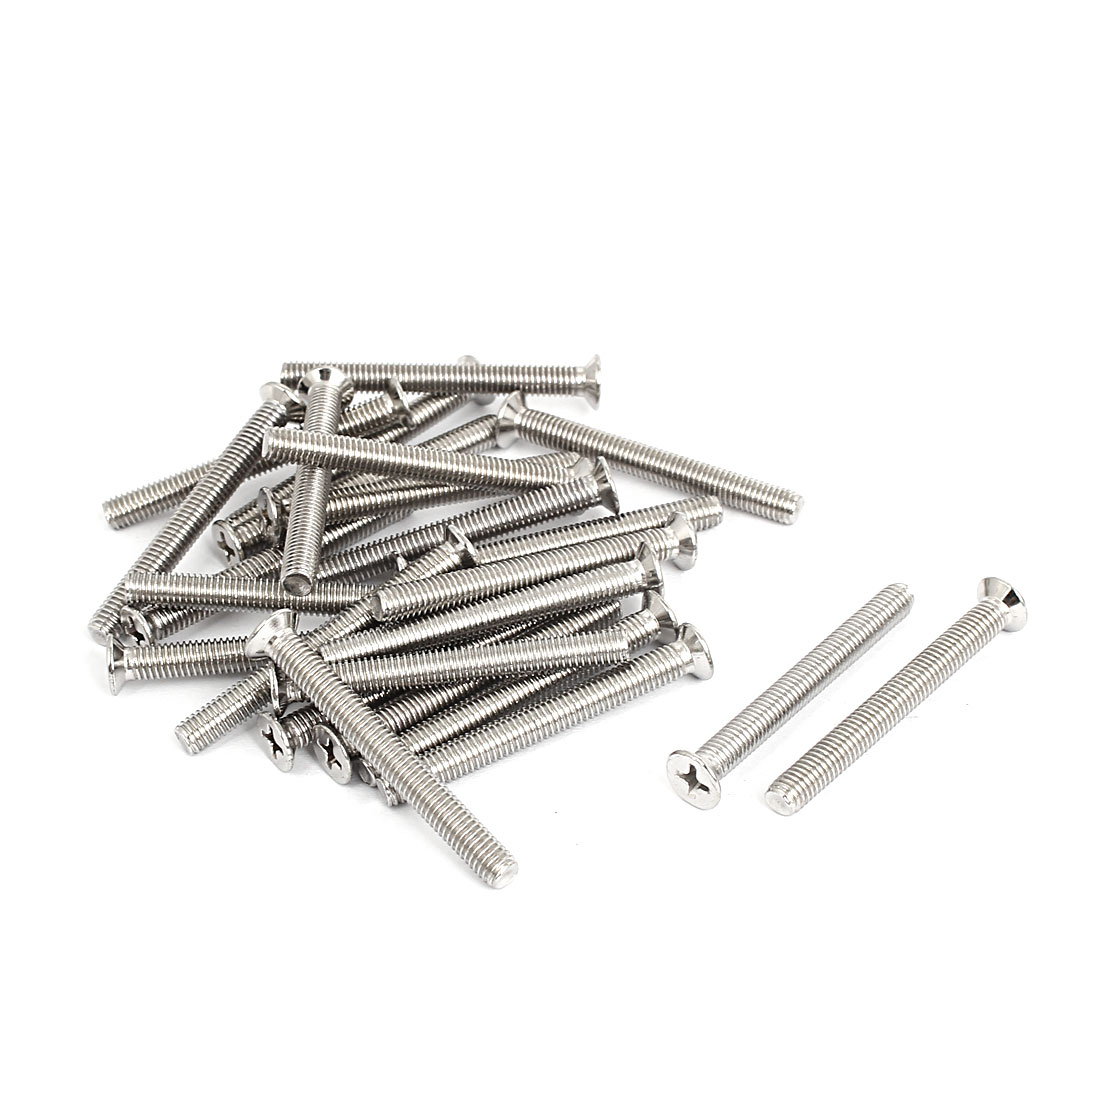 M5x50mm Stainless Steel Countersunk Flat Head Cross Phillips Screw Bolts 25pcs